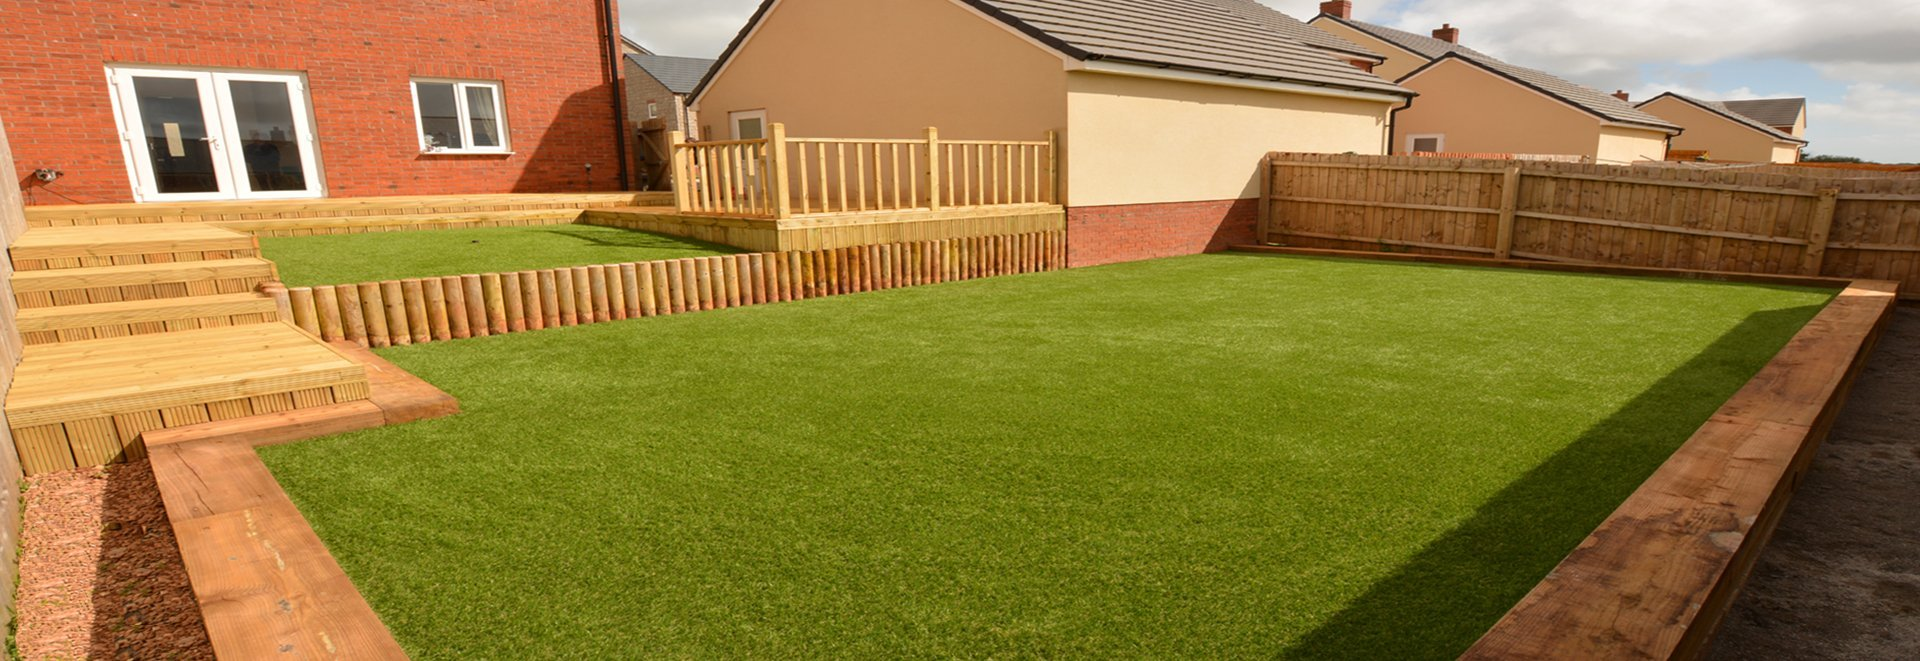 fence repairs or full garden builds serving the cardiff area